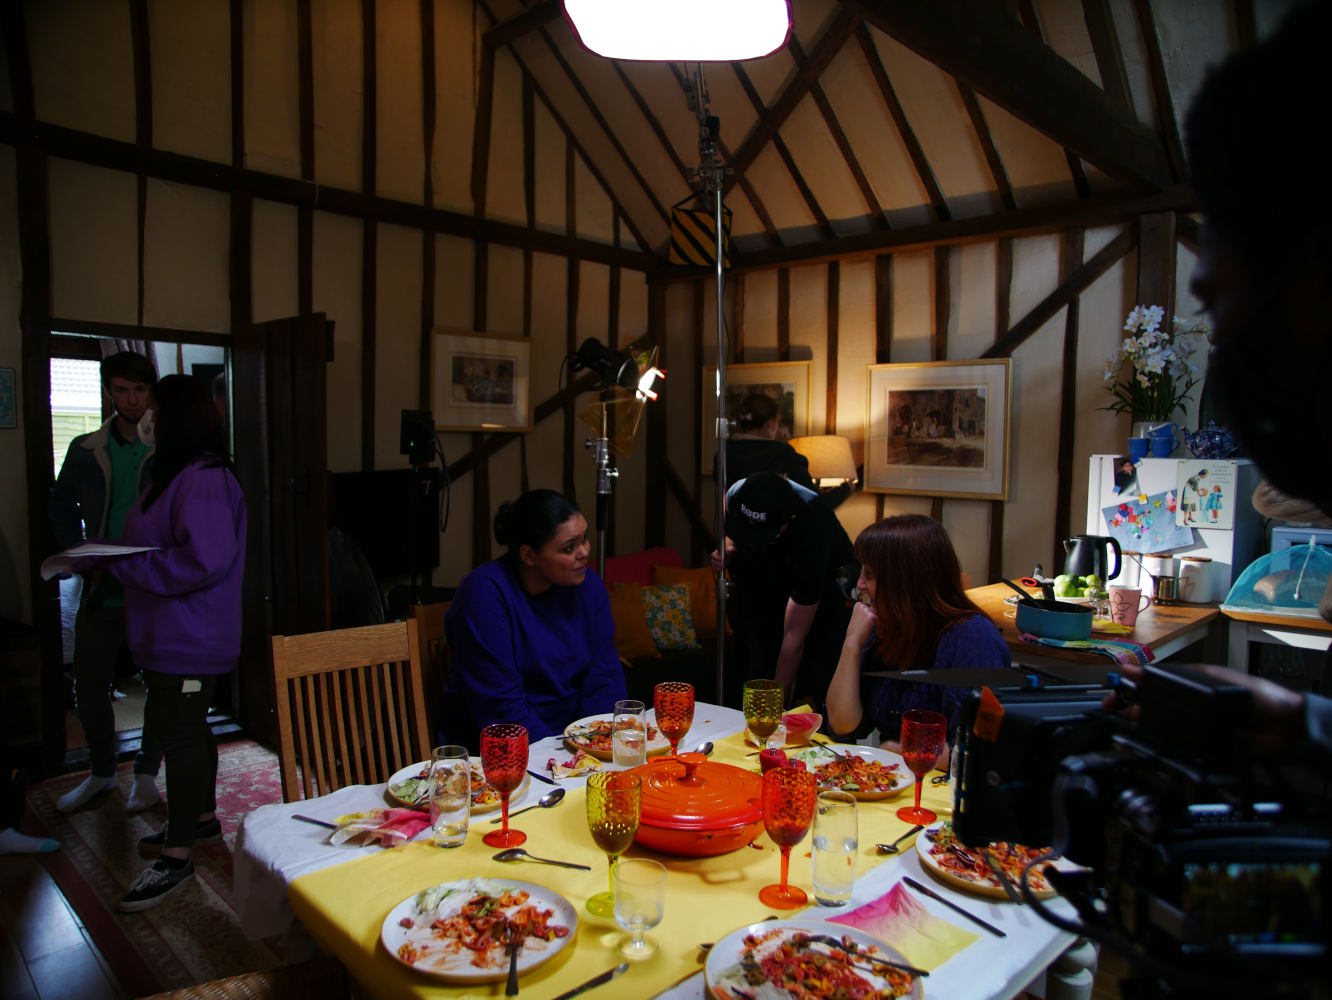 Behind the scenes photo from comedy short film Keep It in the Family